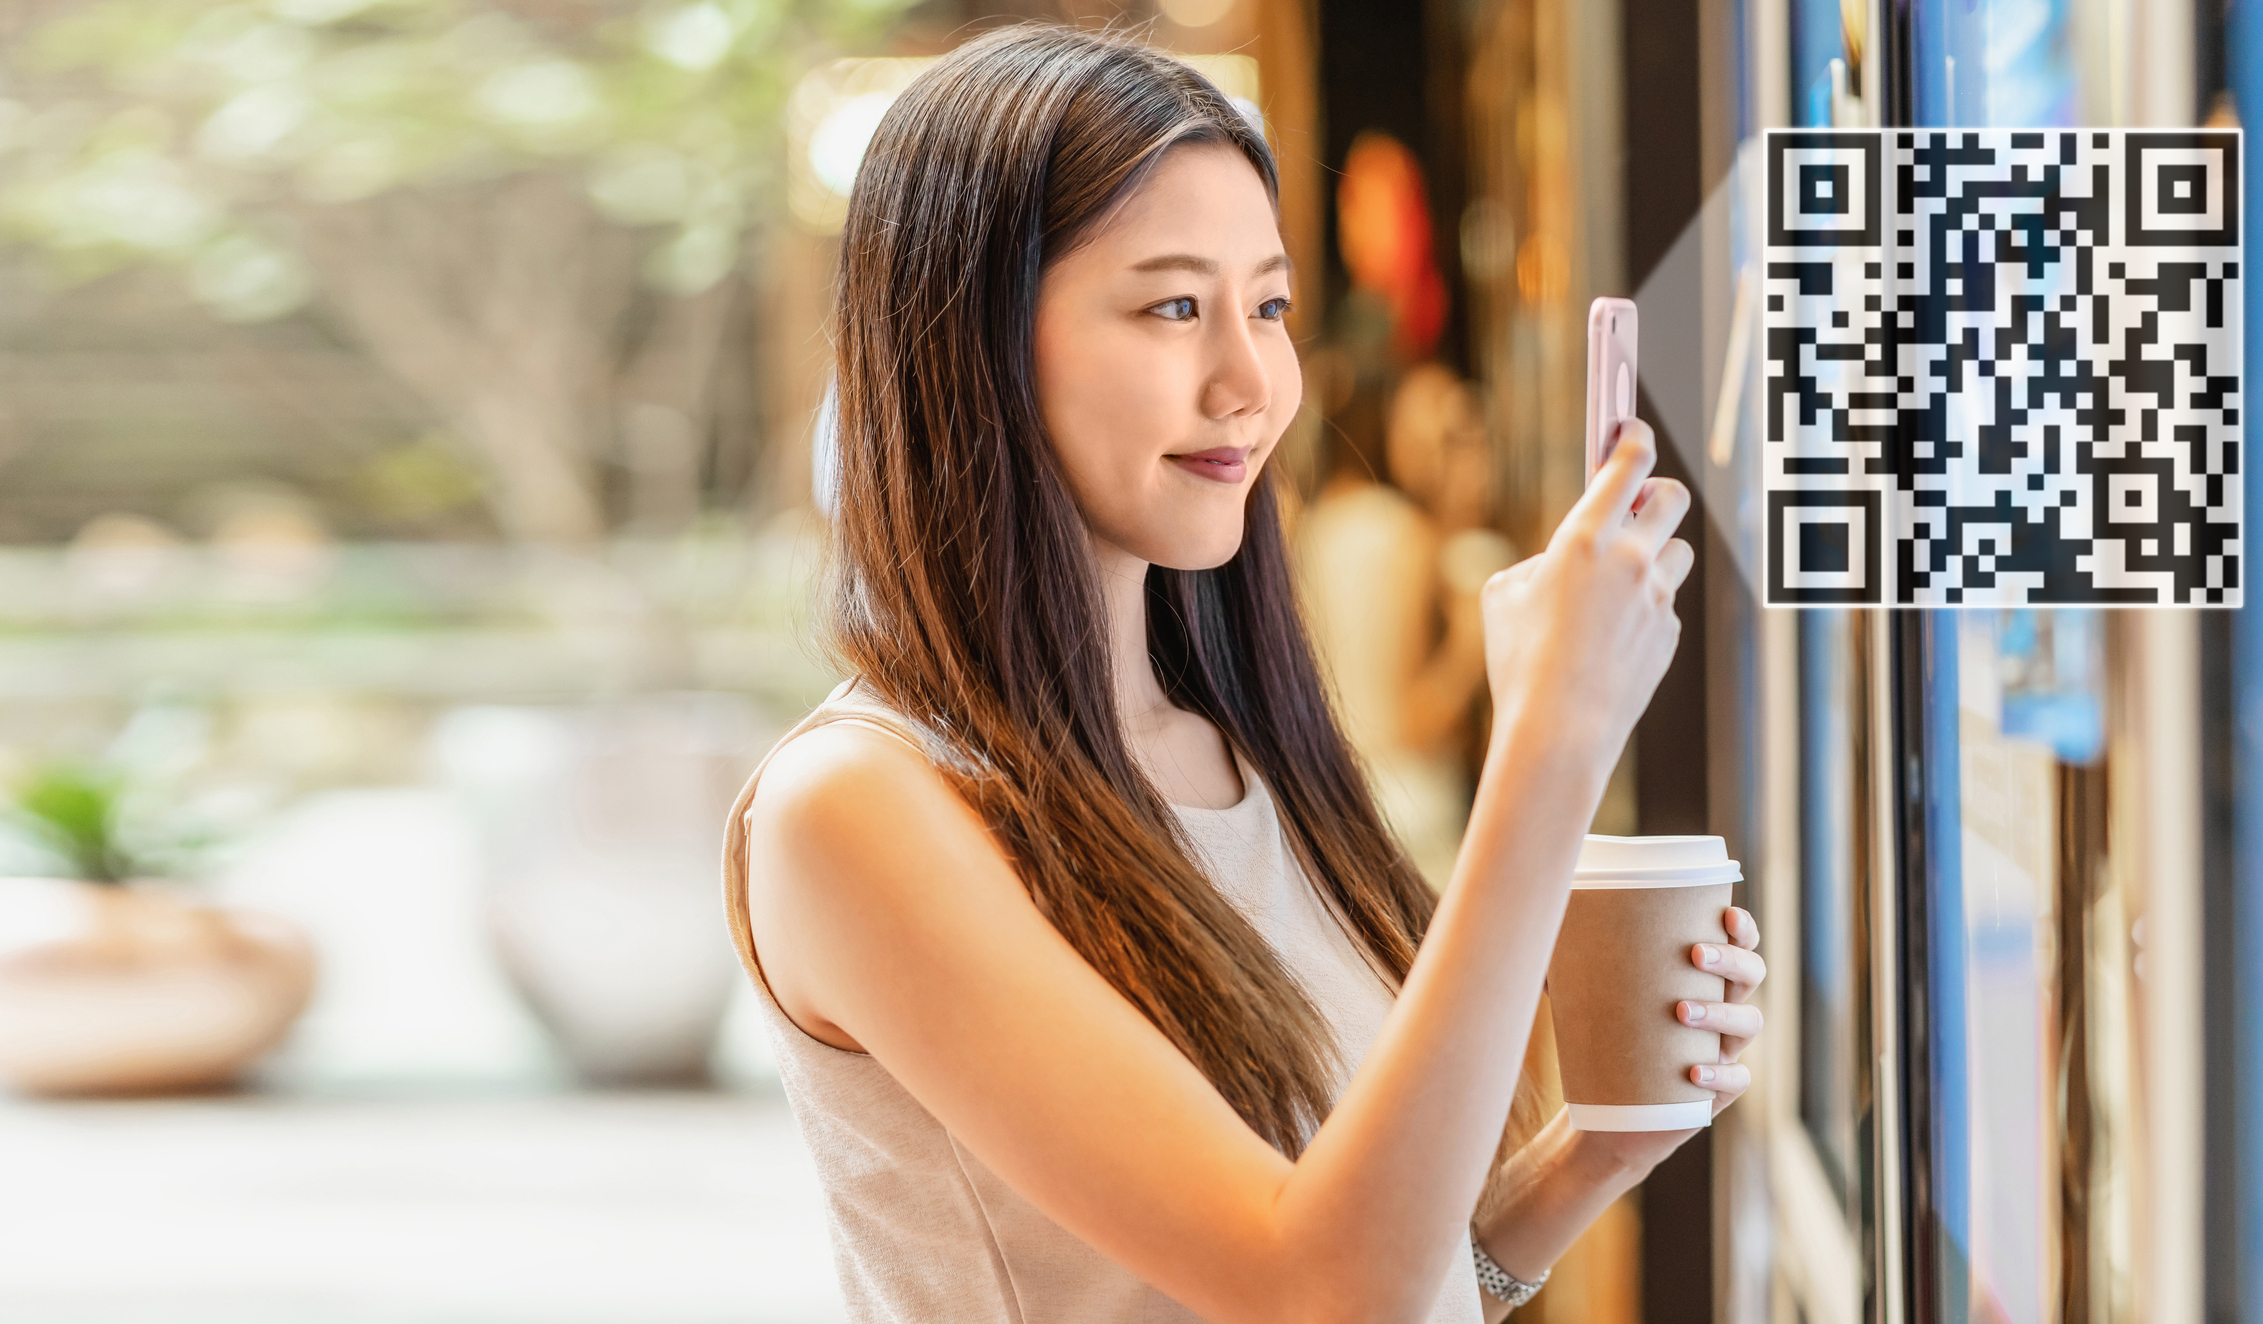 Woman scanning window QR to place order